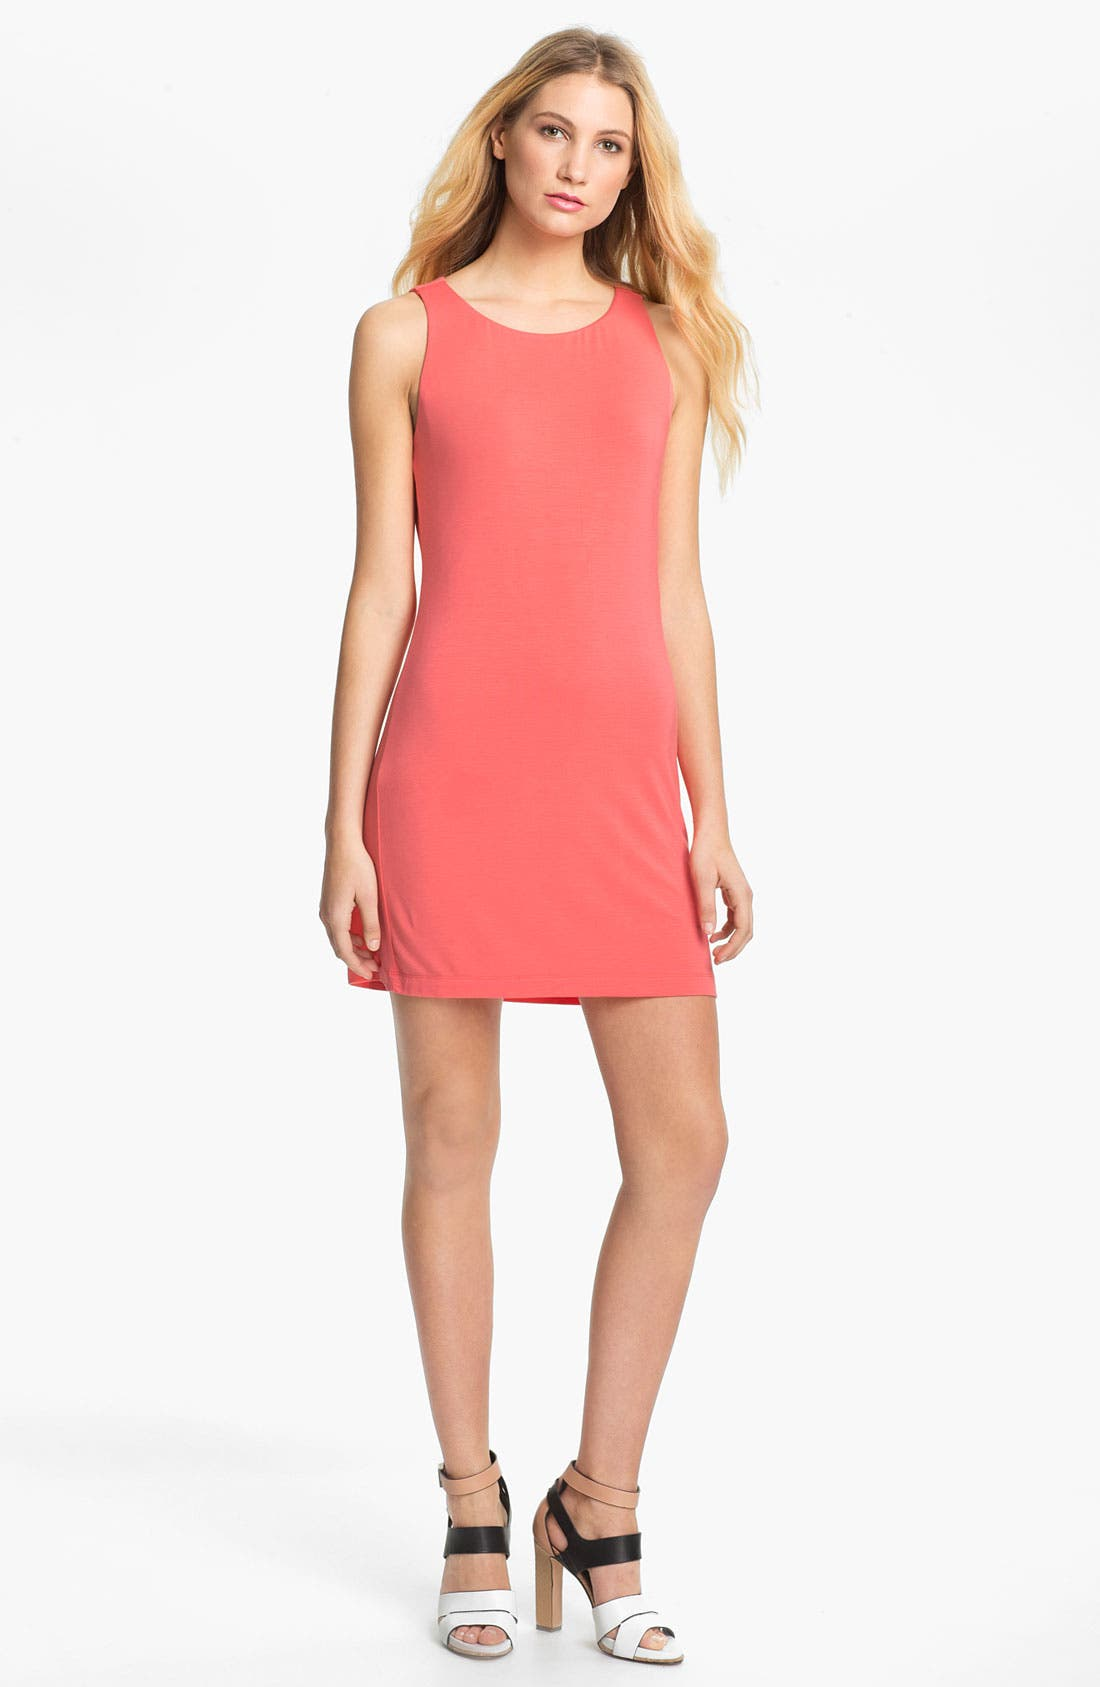 Alternate Image 1 Selected - Tart 'Allie' Back Keyhole Sleeveless Sheath Dress